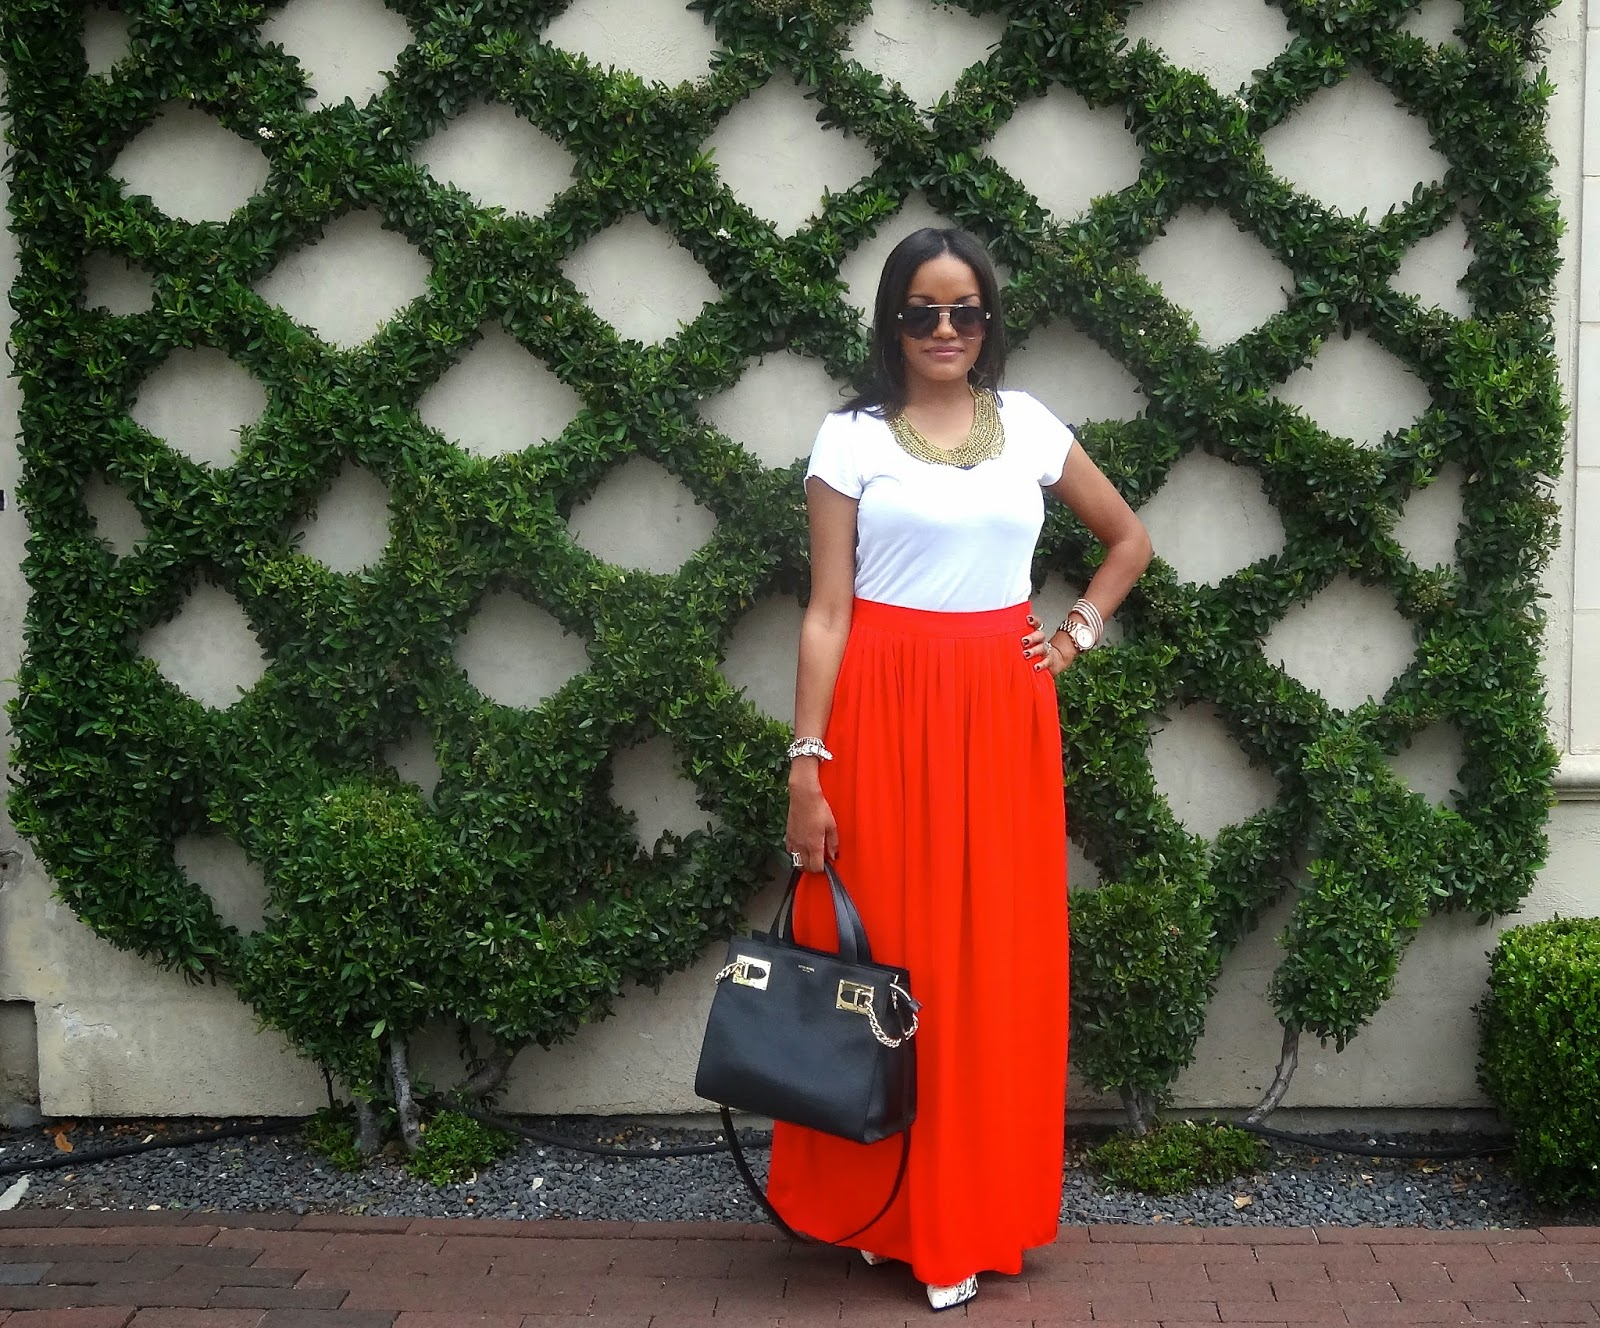 dallas fashion blogger, fashion blogger, detroit fashion blogger, maxi skirt, spring fashion, snakeskin pump, steve madden, bcbg maxi,henri bender, dallas fashion, arm party, highland park,